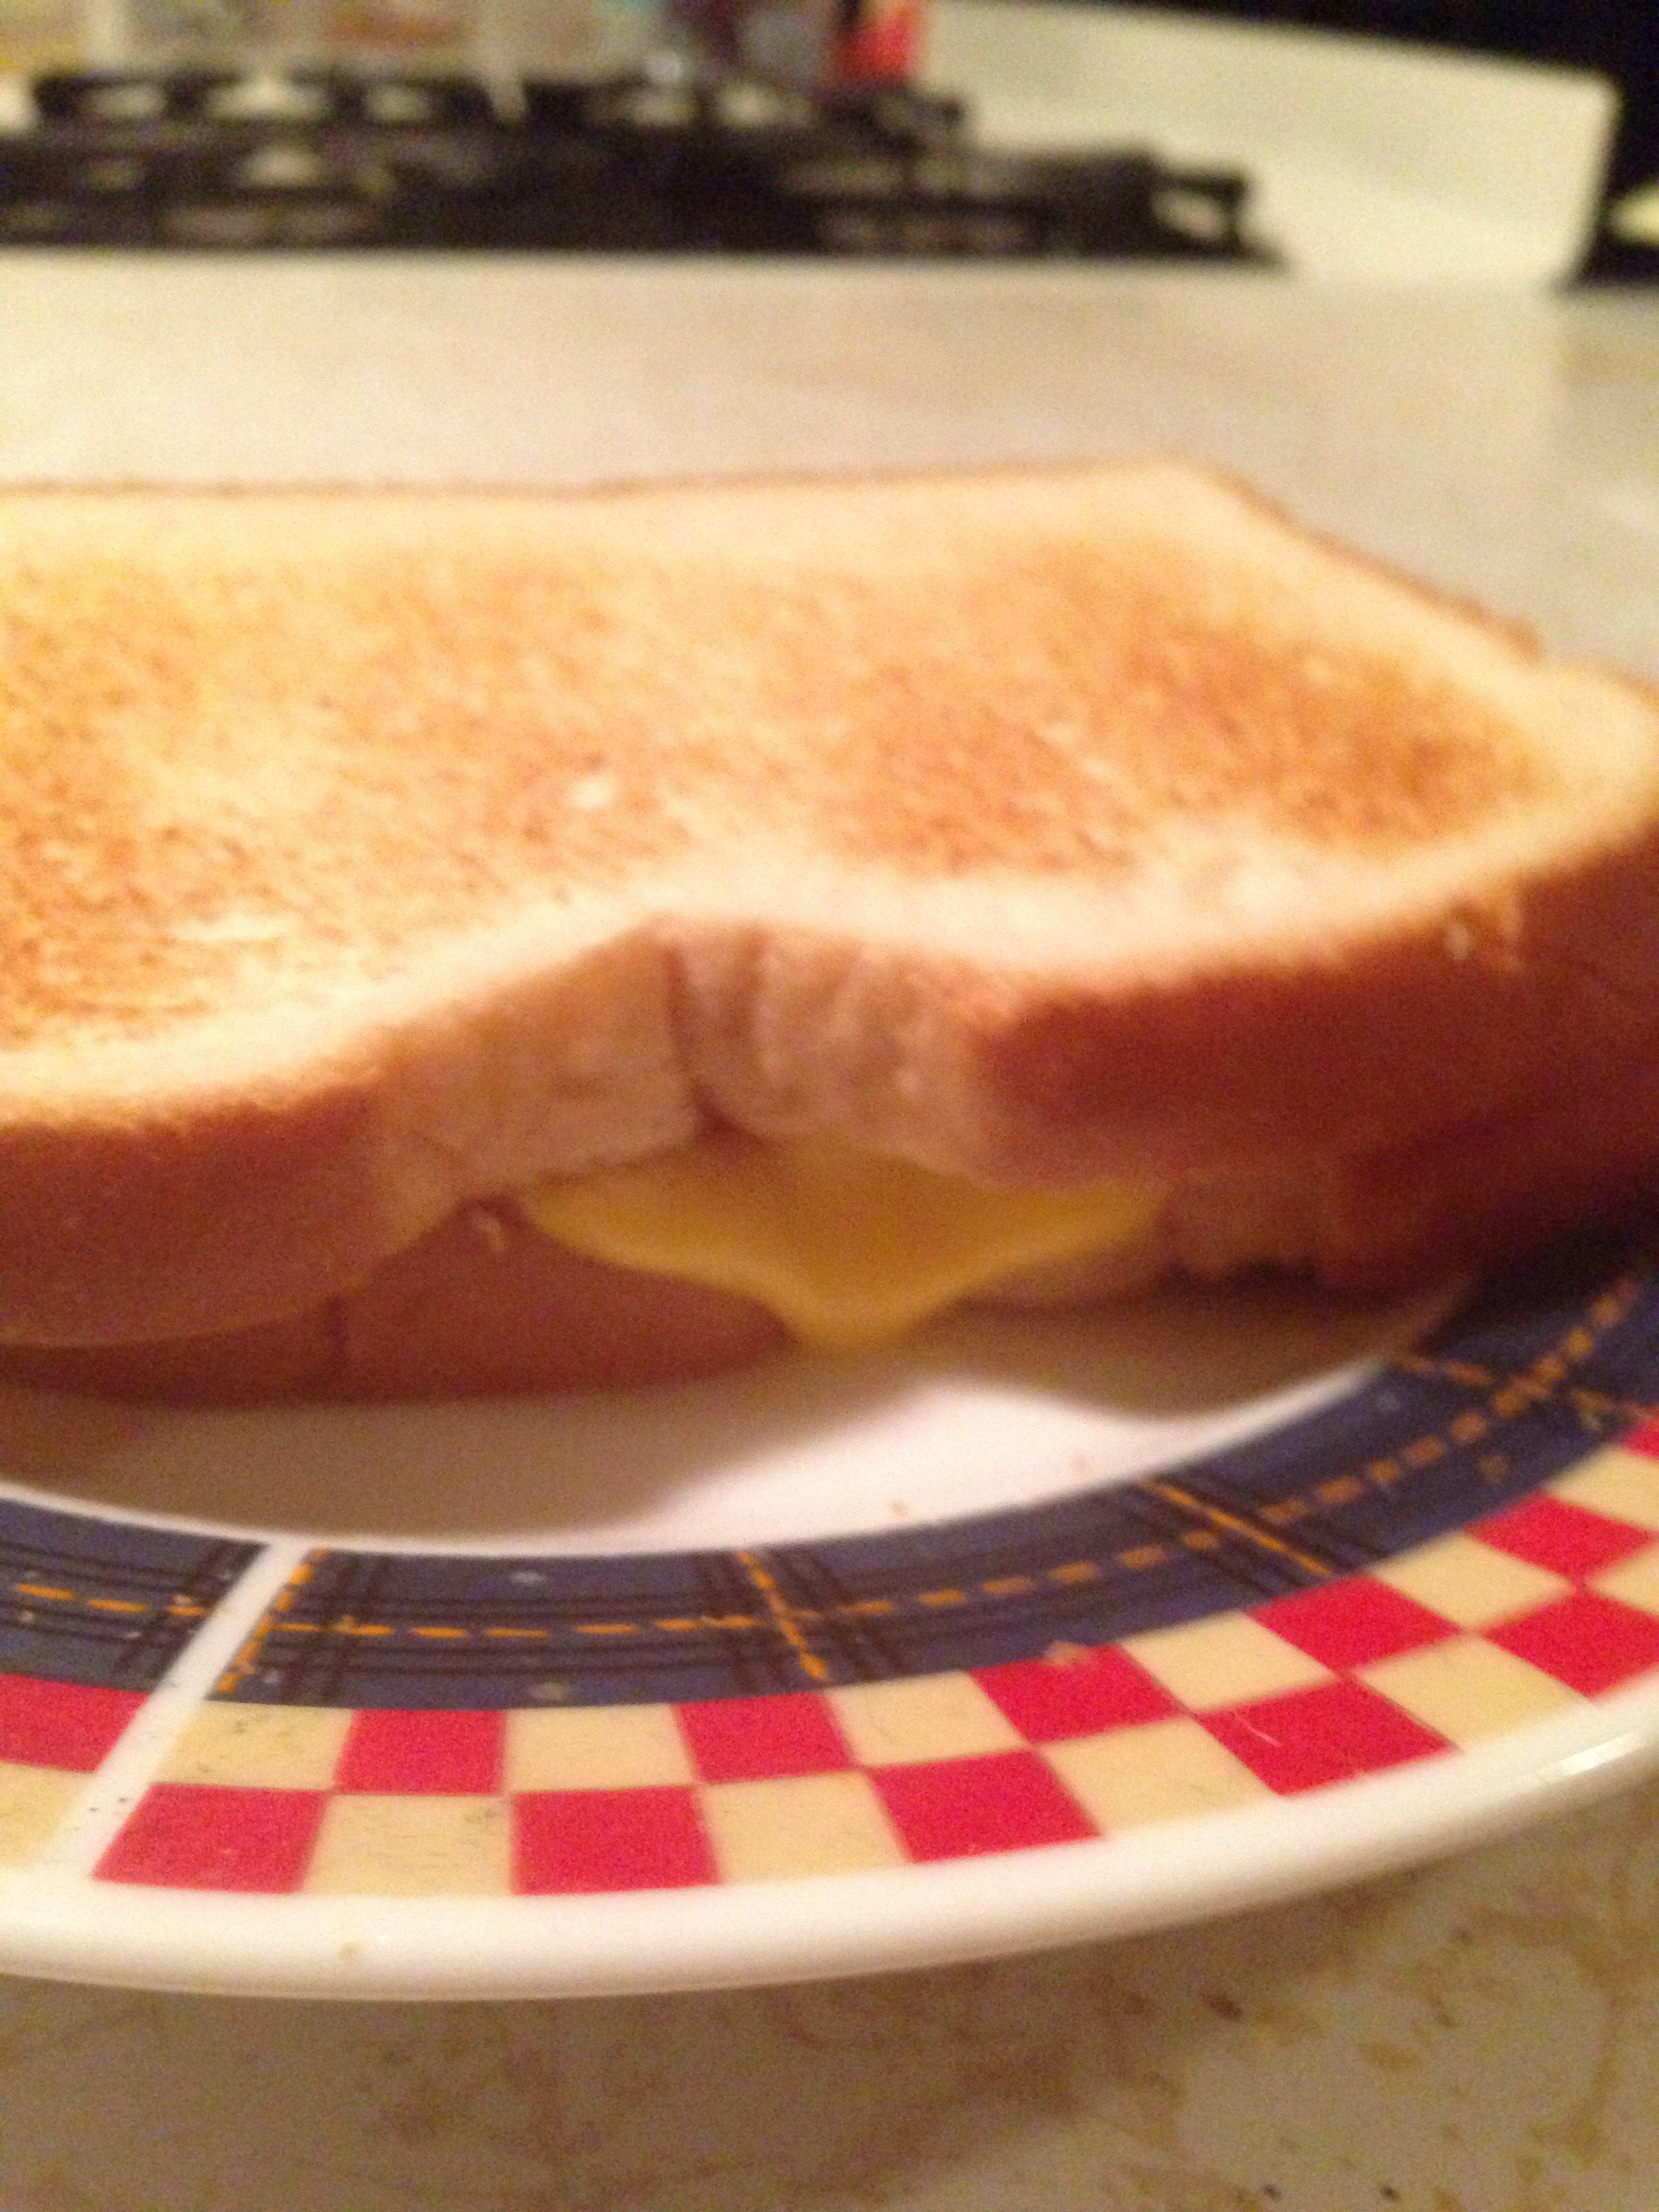 how to microwave grilled chees 5